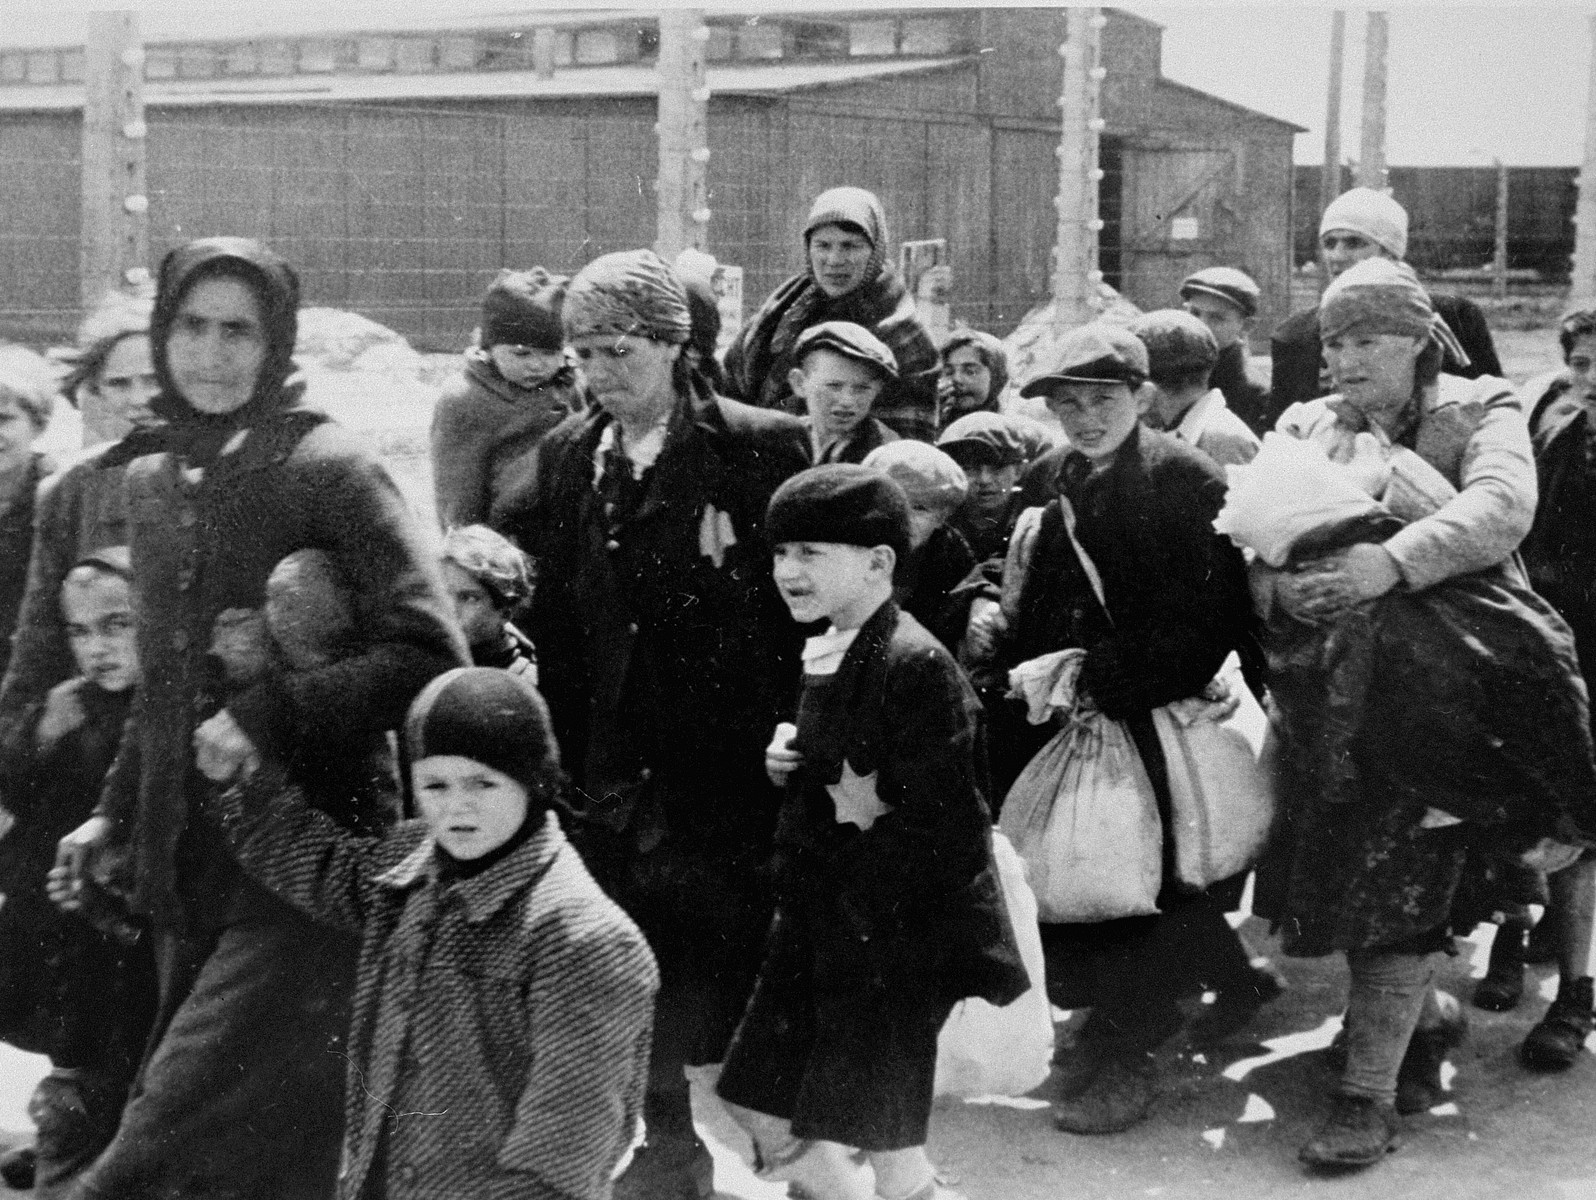 Jewish women and children from Subcarpathian Rus who have been selected for death at Auschwitz-Birkenau, walk toward the gas chambers.  Bracha Junger is pictured on the far left holding the hands of her two children.